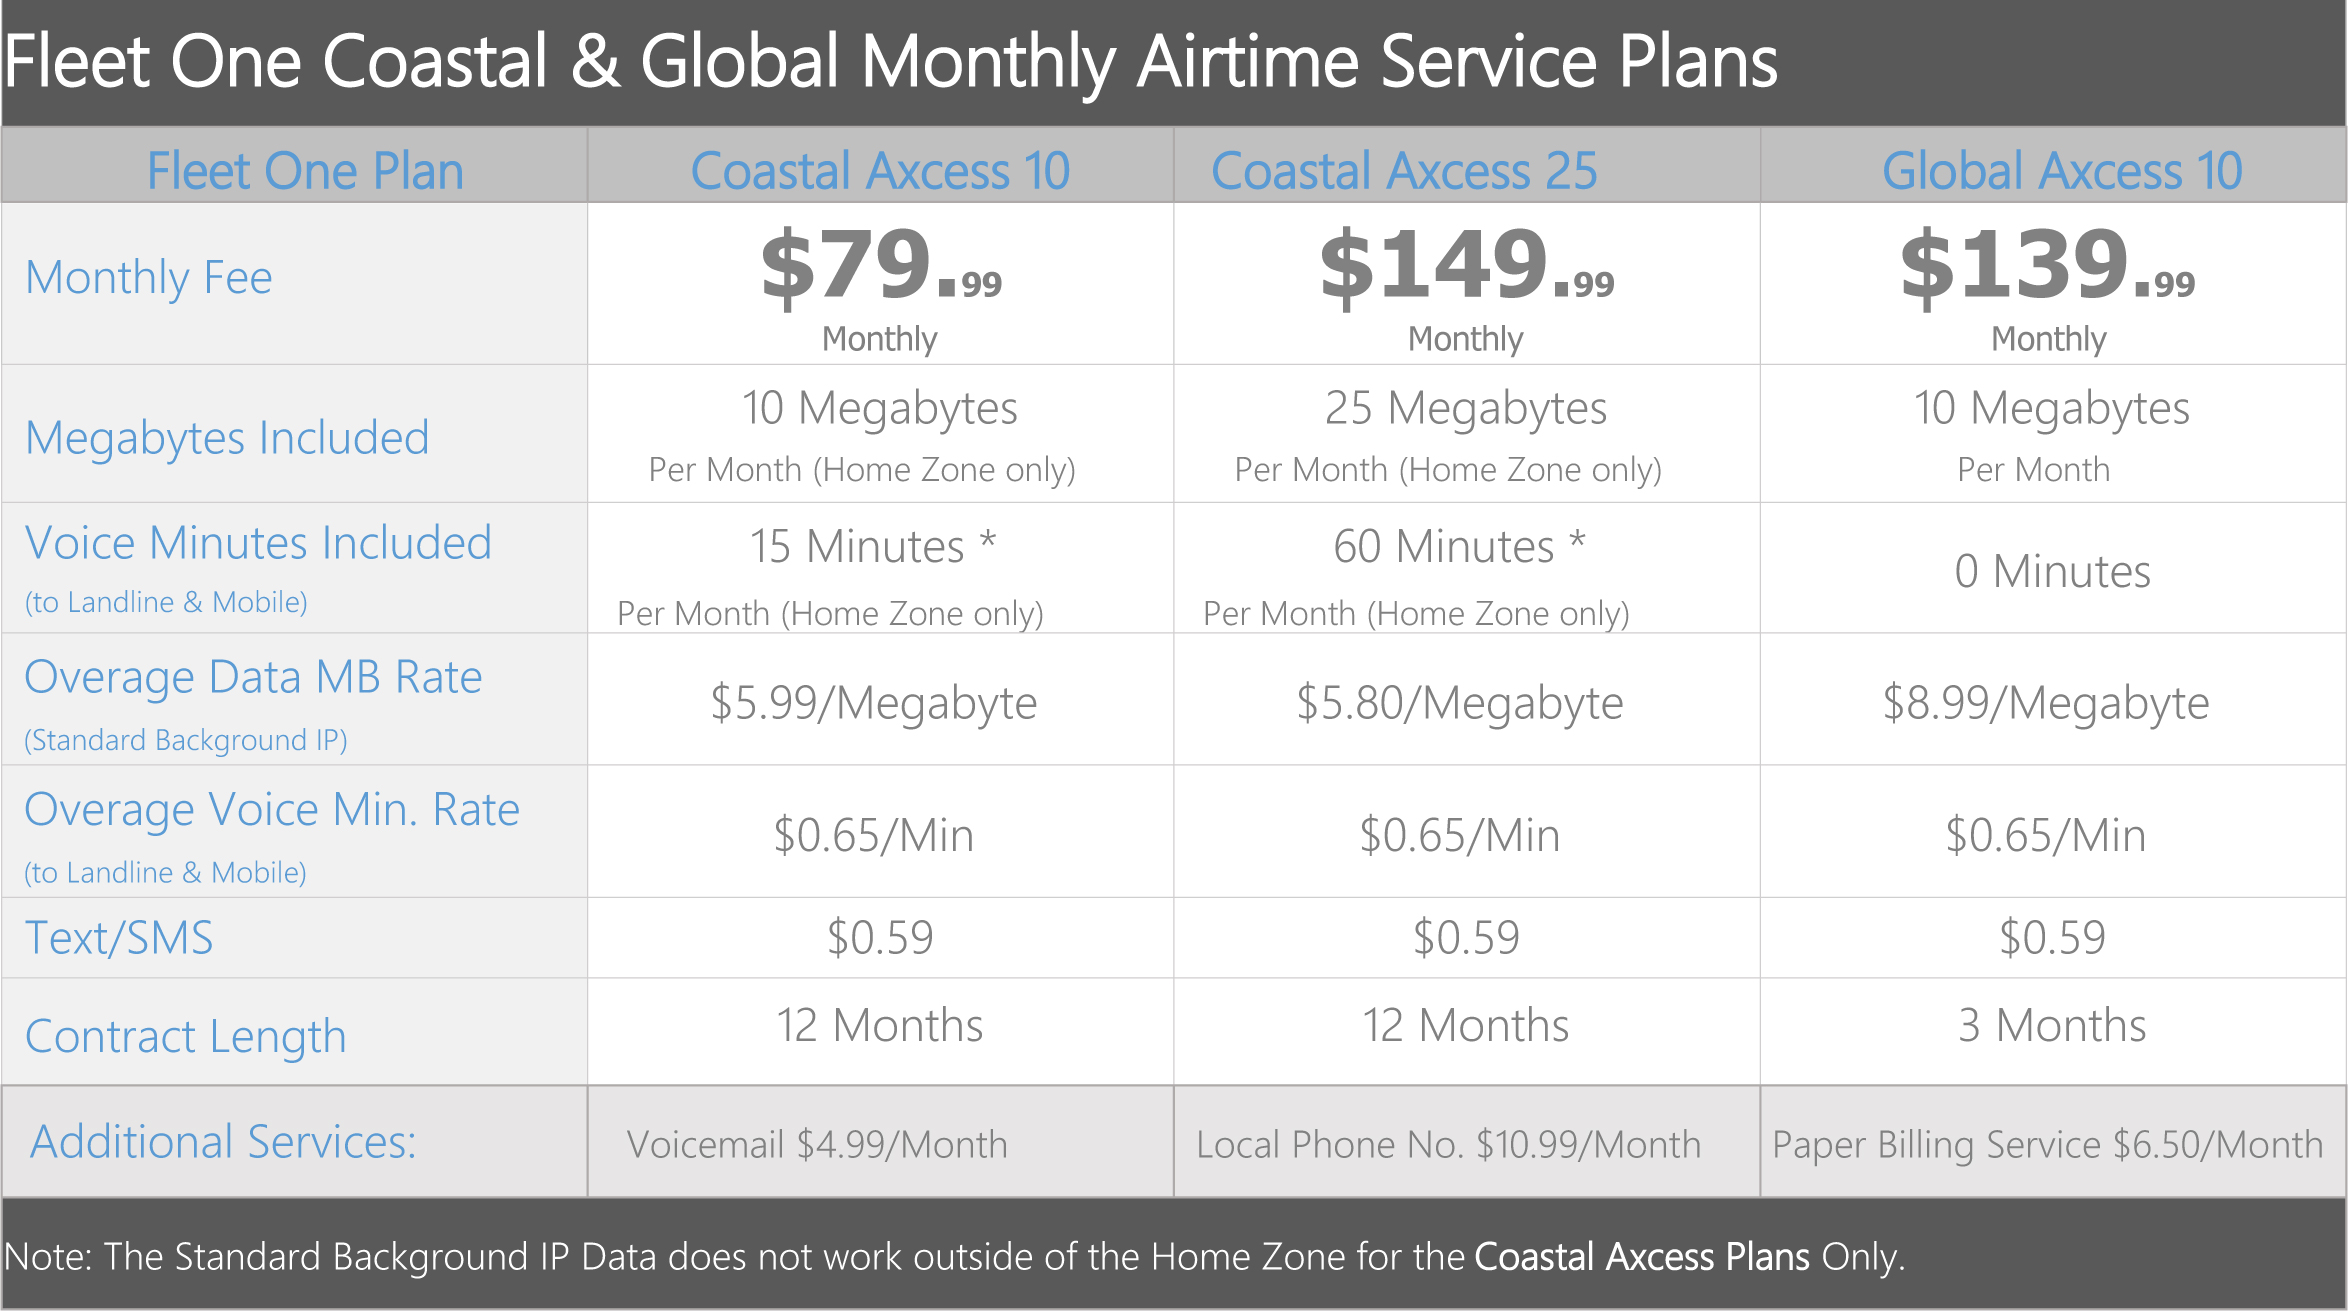 inmarsat-fleet-one-coastal-global-monthly-airtime-plans-price-chart-northernaxces-1.jpg